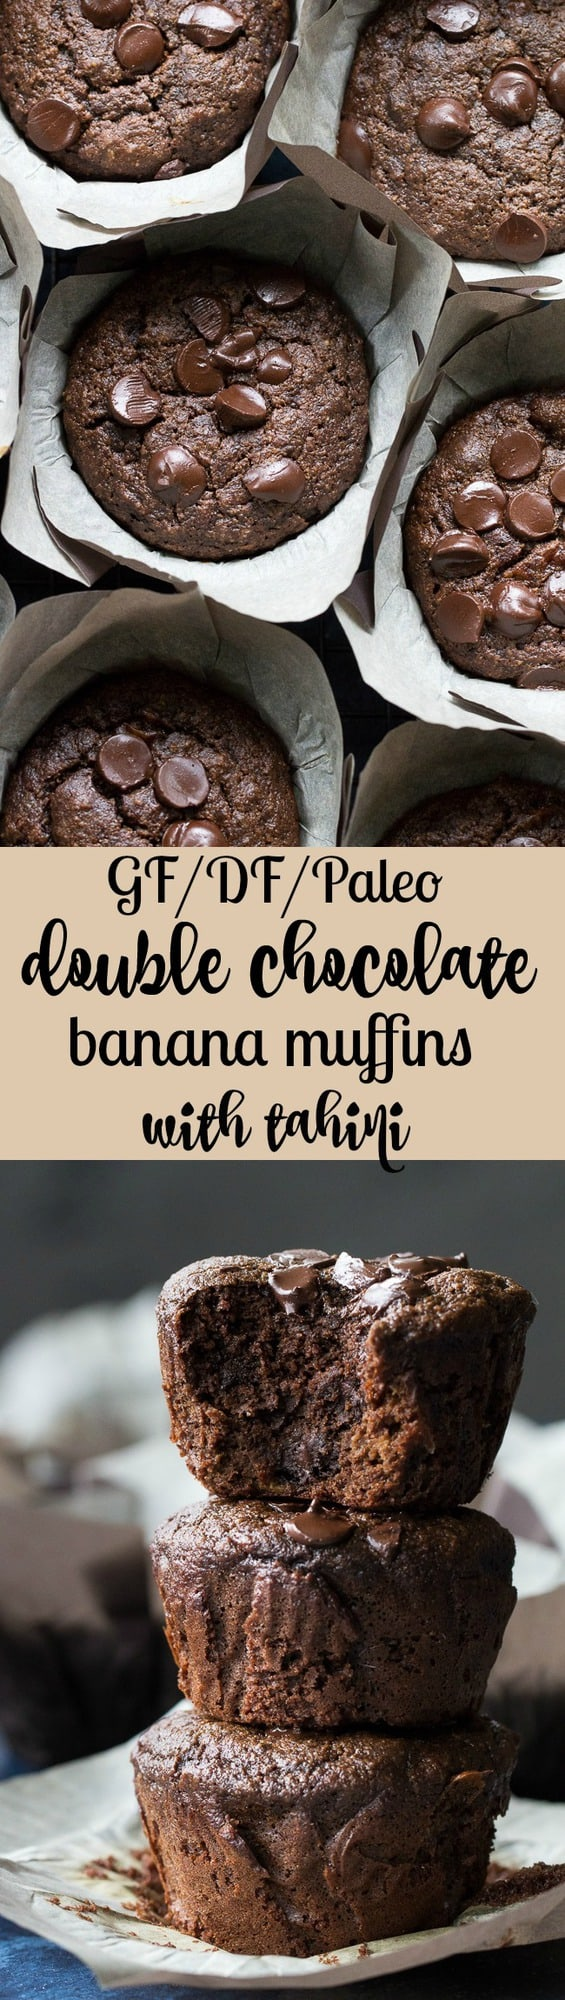 Double Chocolate Banana Muffins with Tahini | The ...